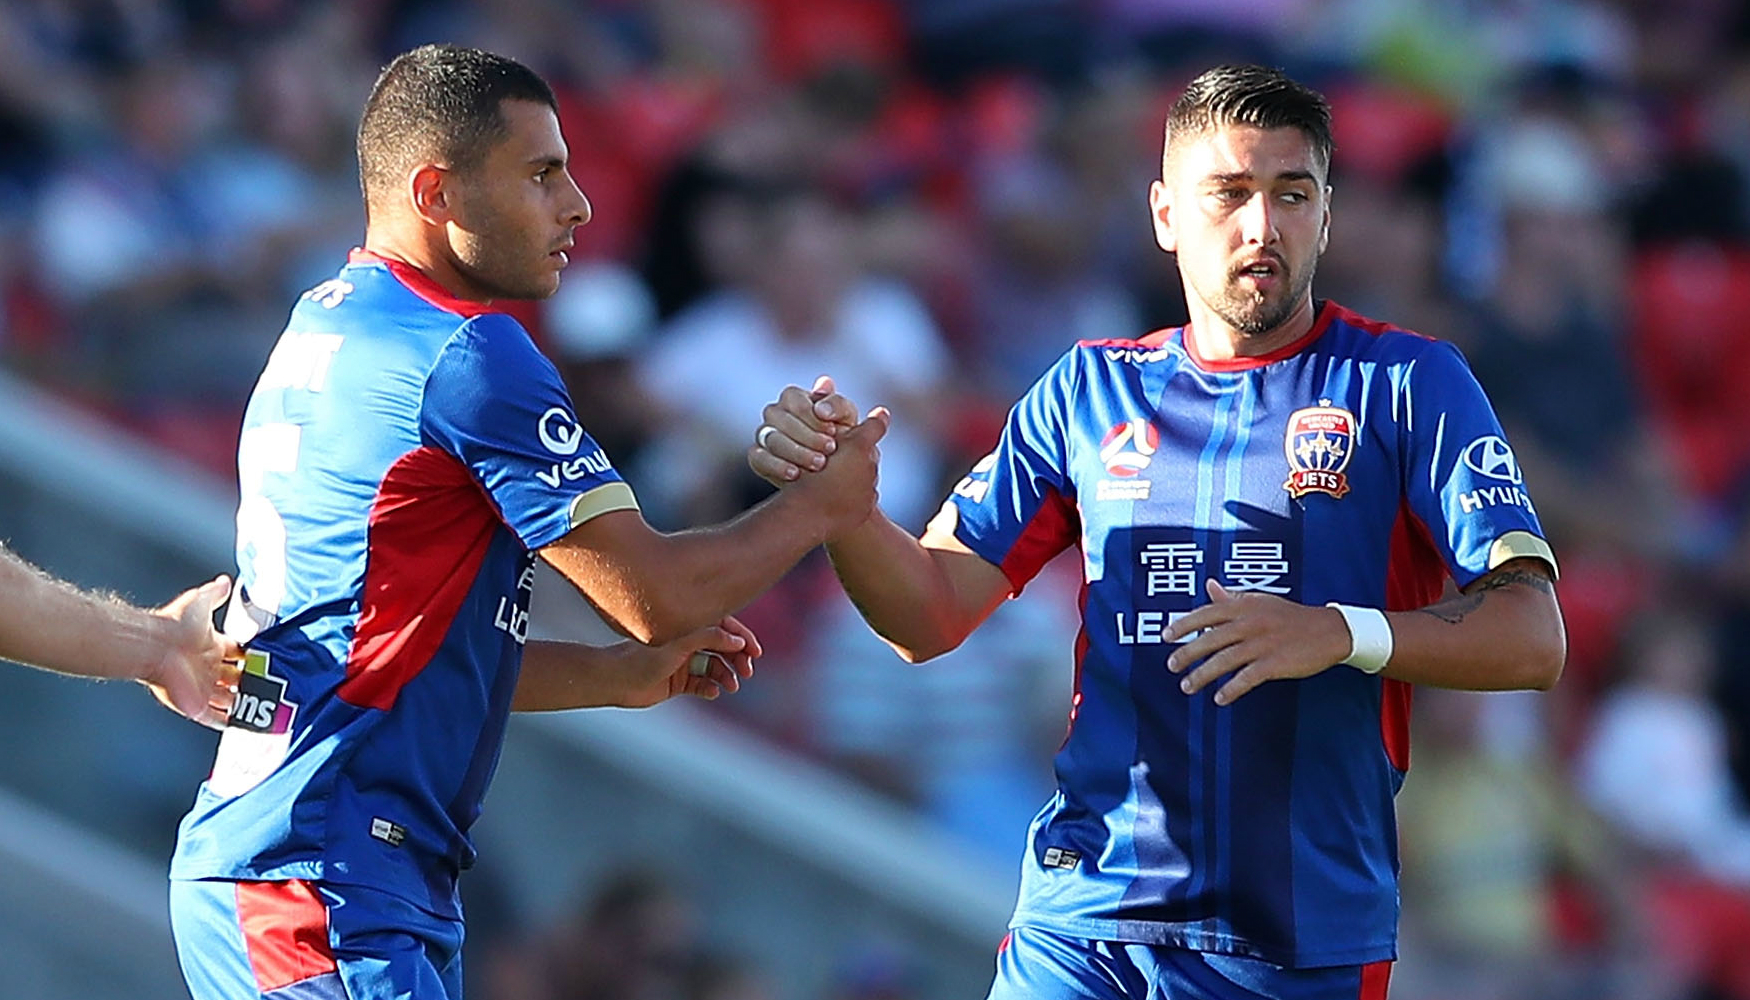 Andrew Nabbout and Dimitri Petratos